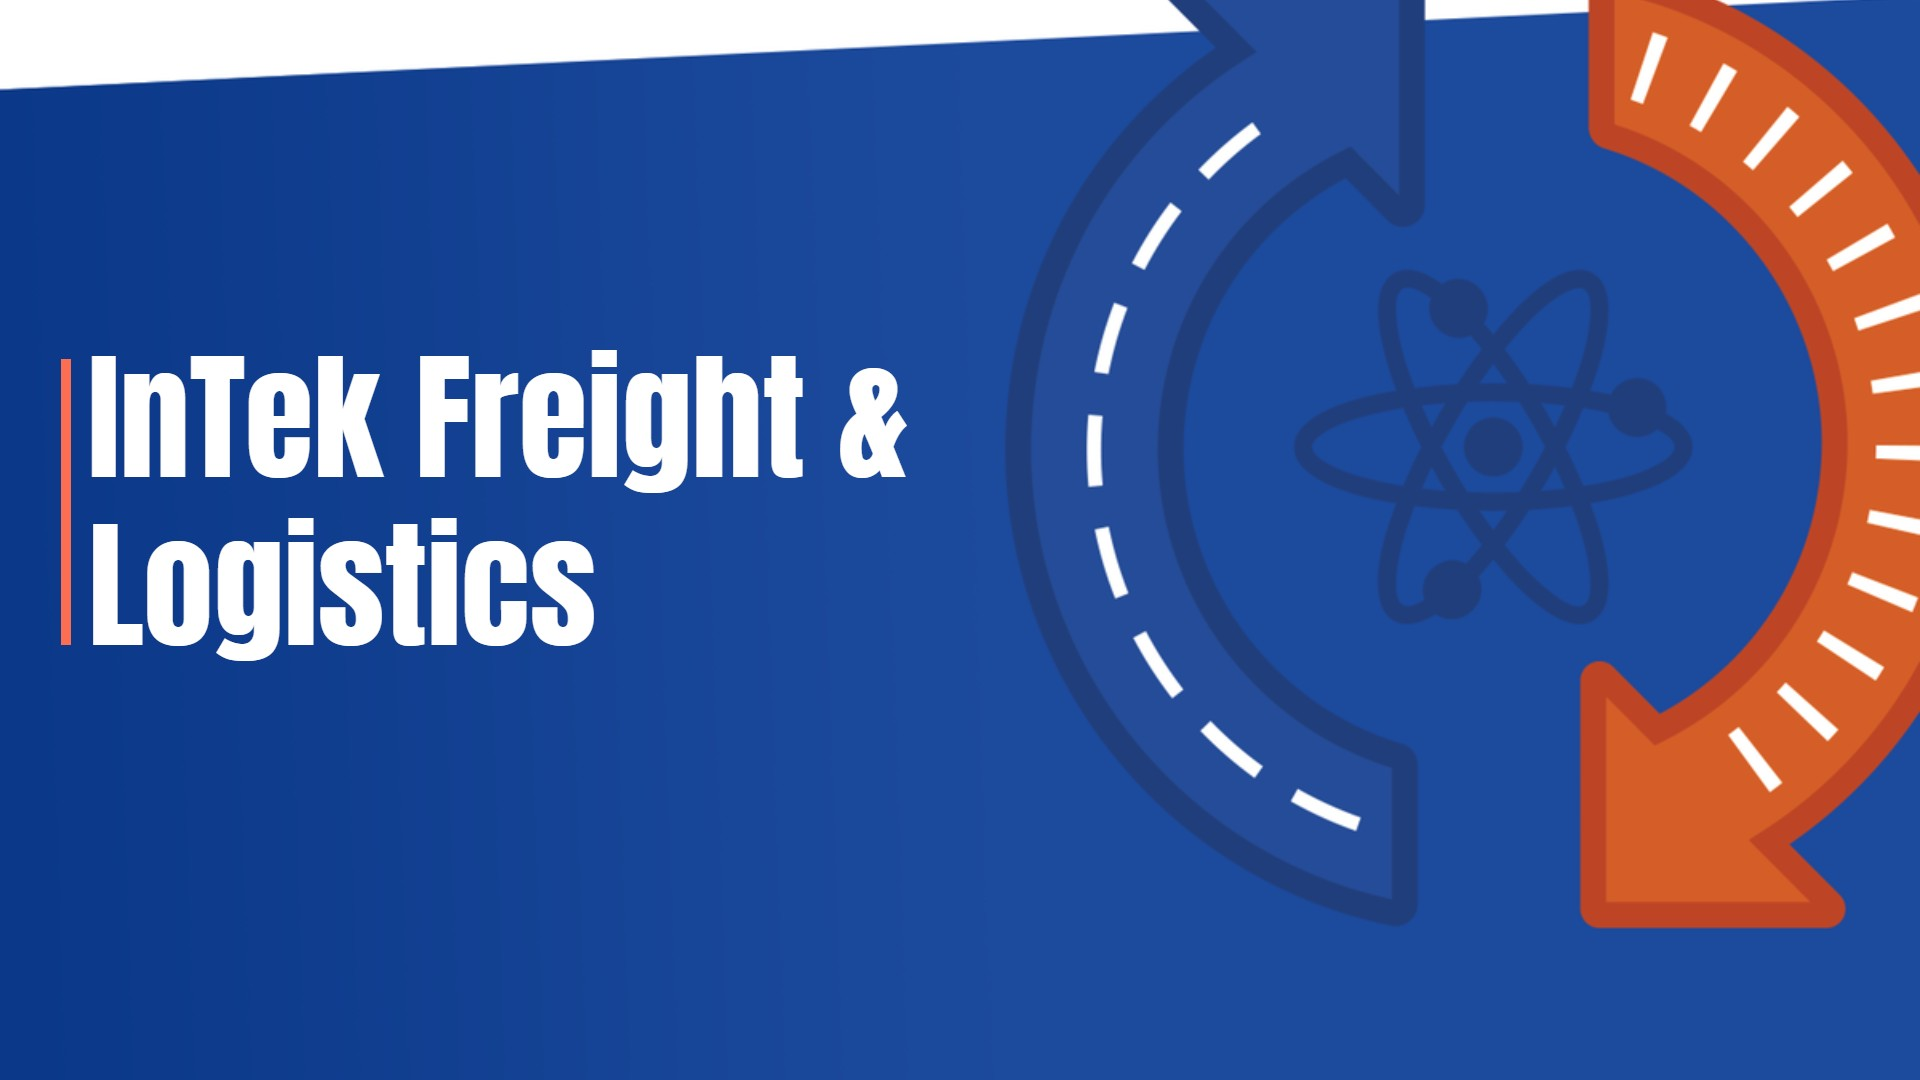 Overview of InTek Freight & Logistics